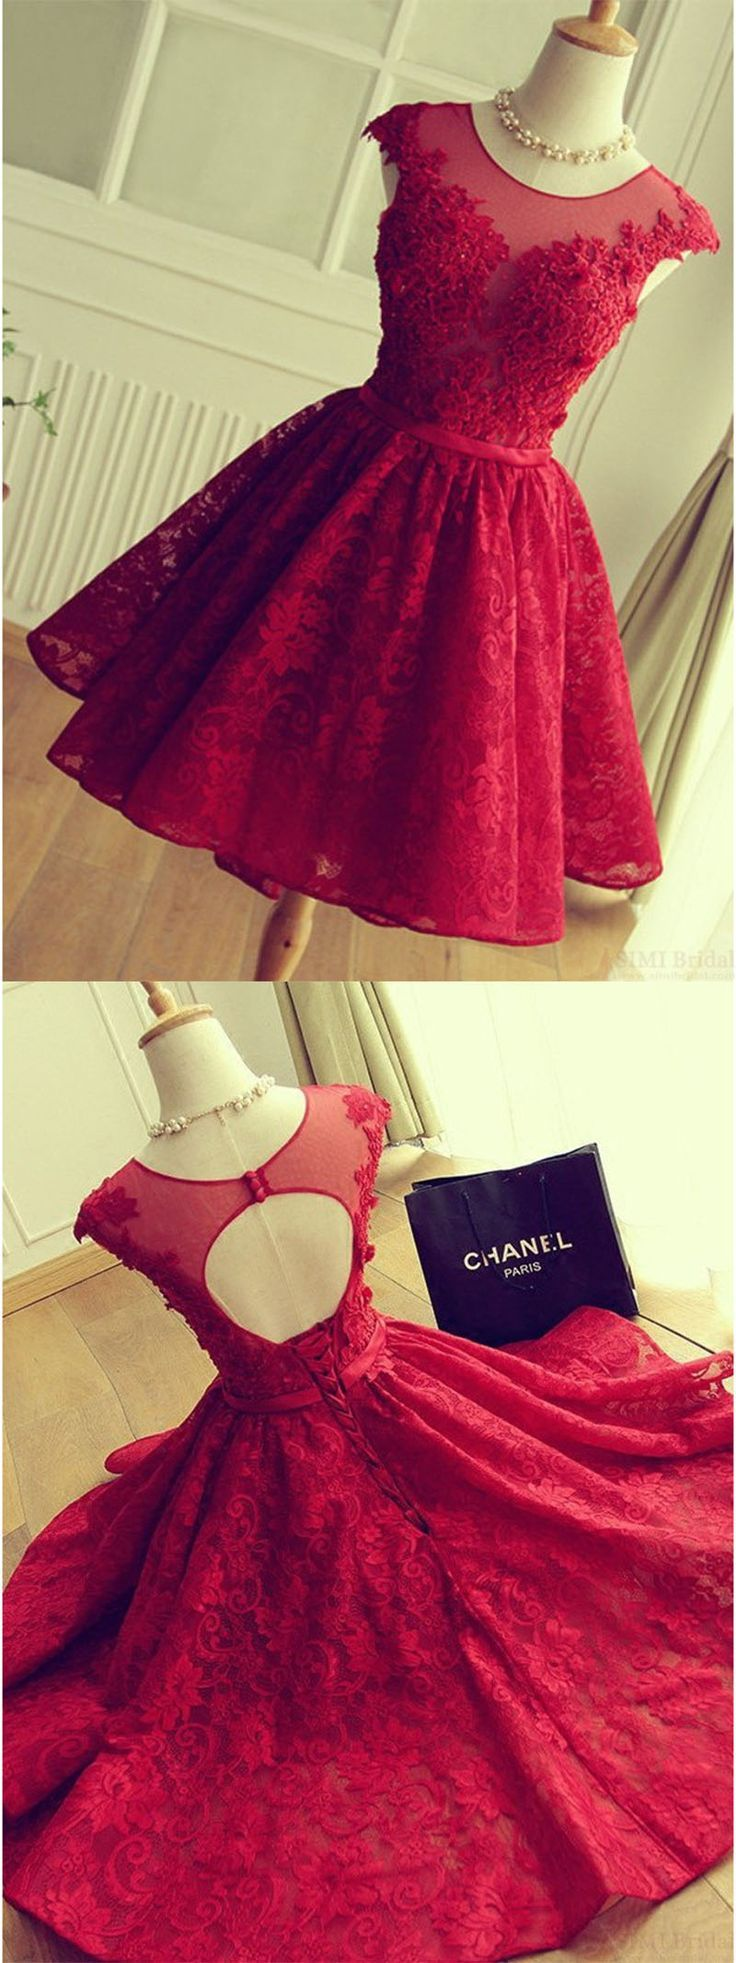 Adorable kneelength red short lace prom dress homecoming dress